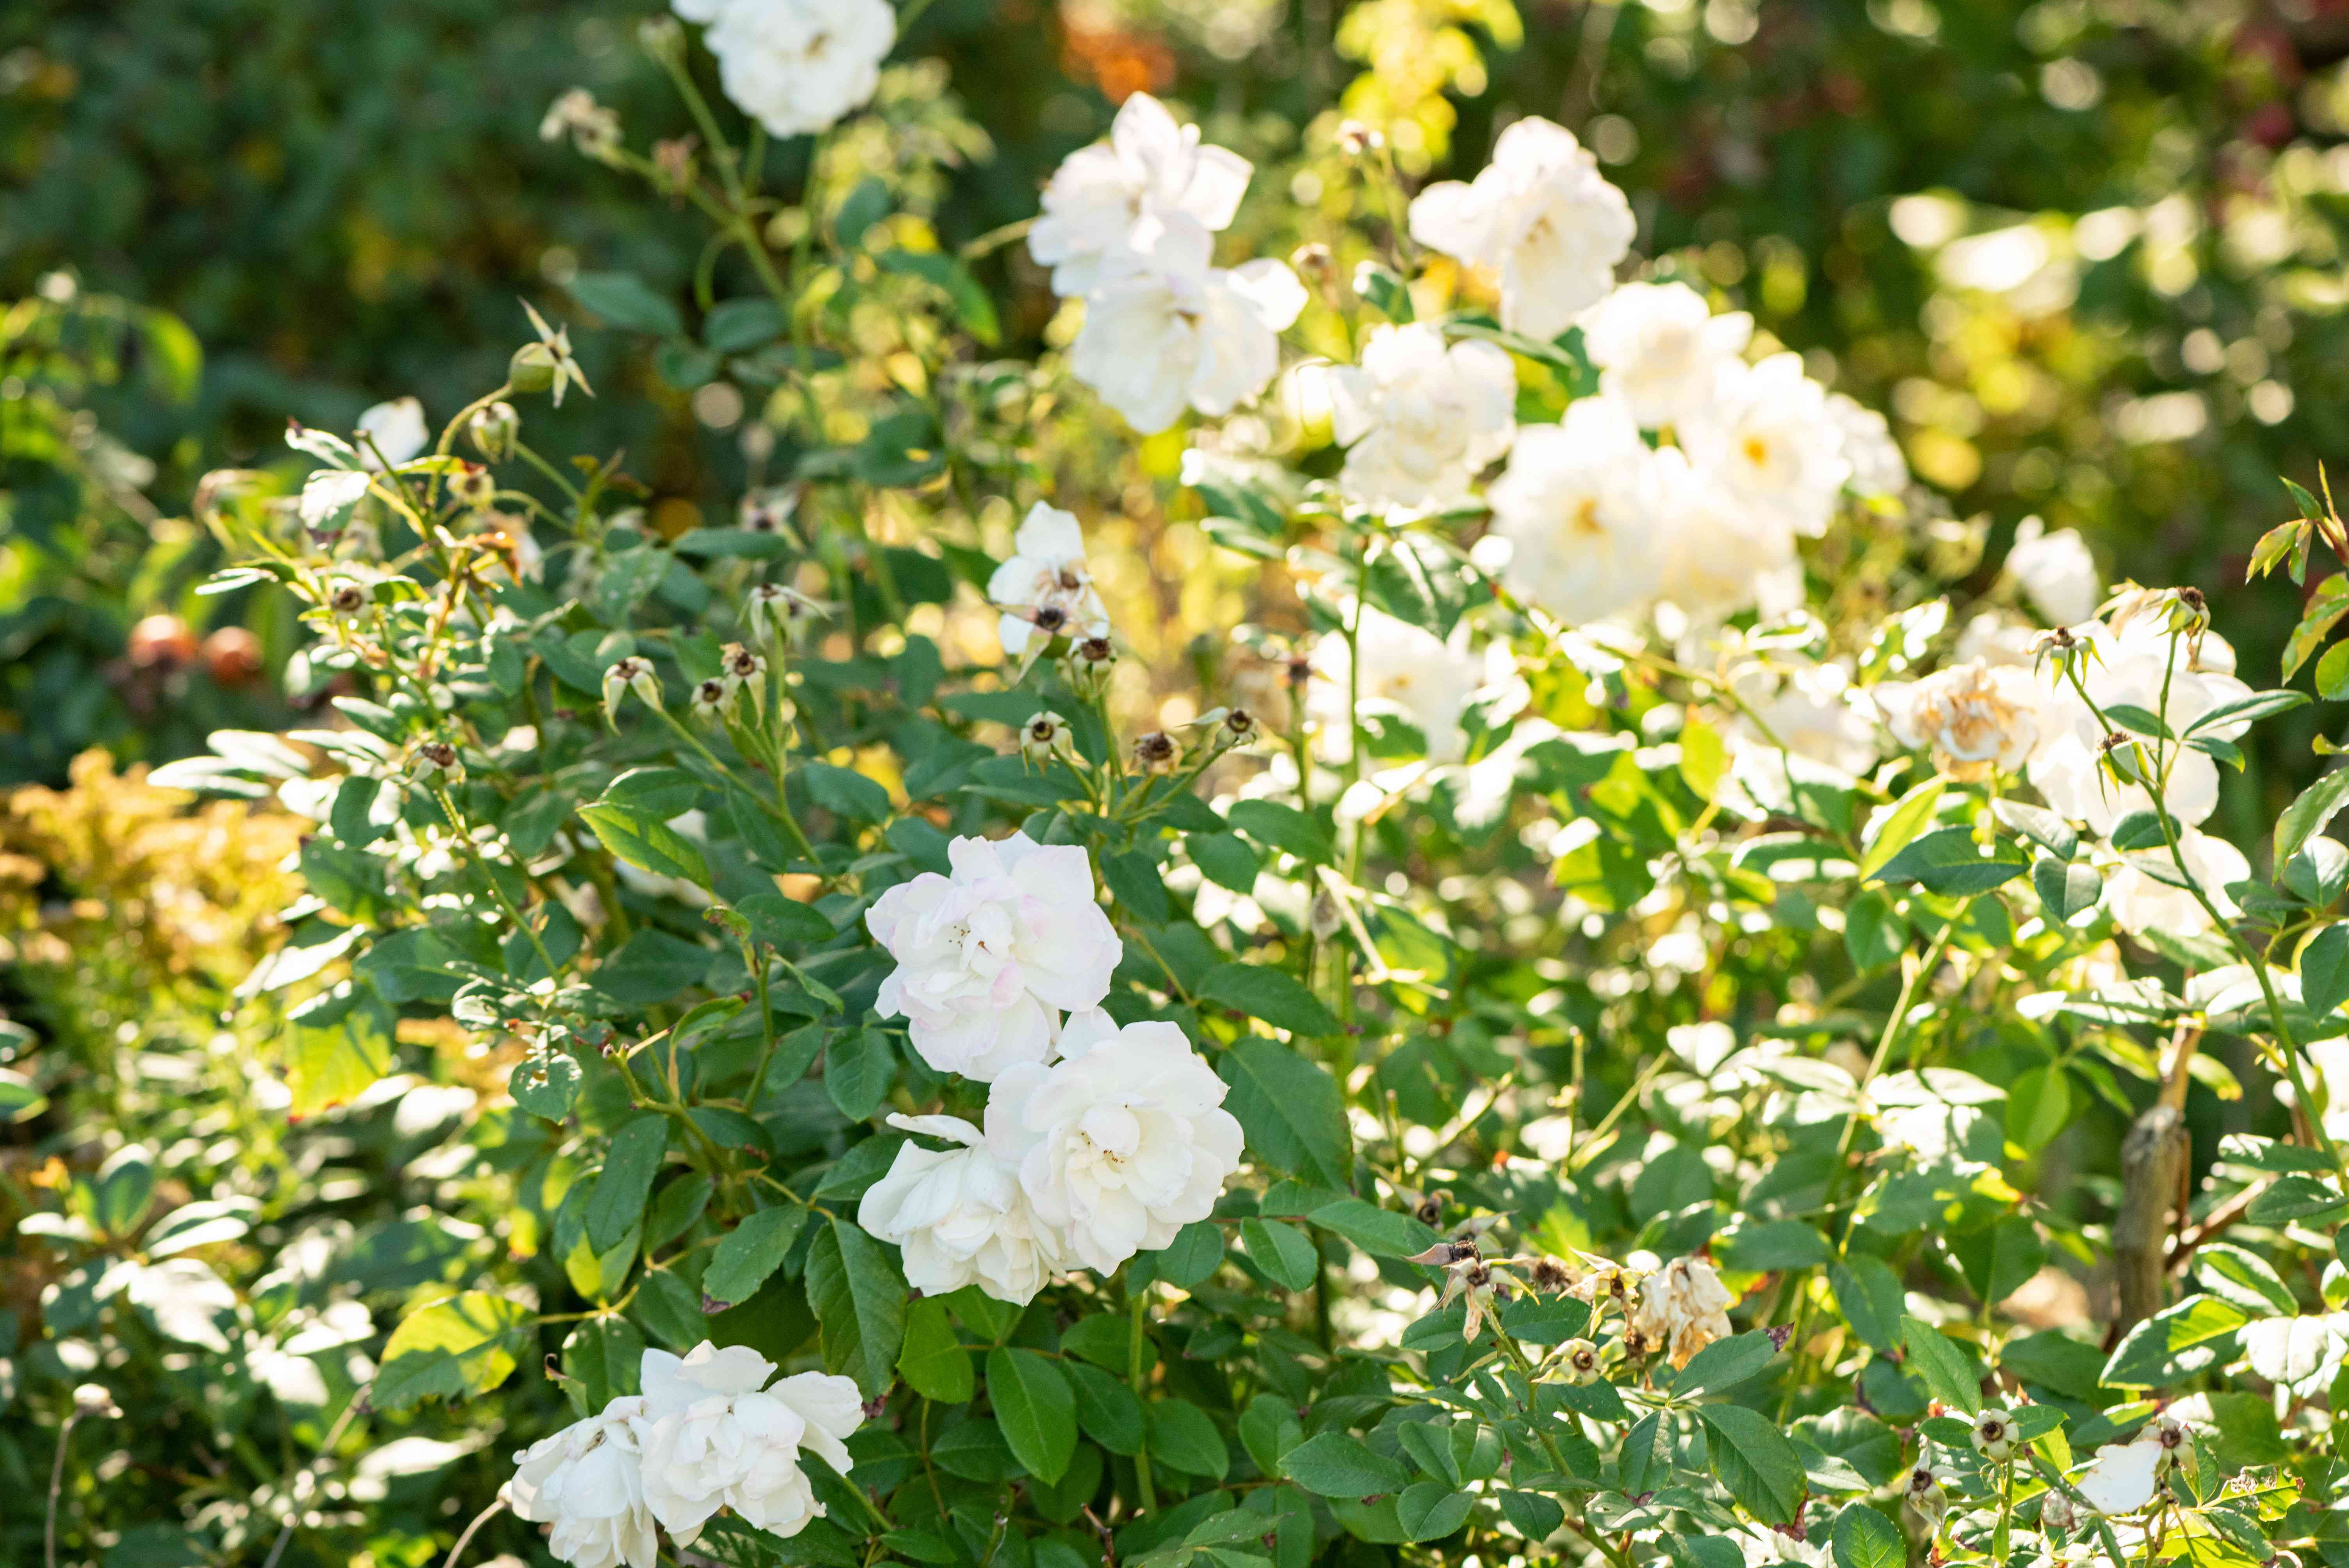 Cherokee rose bush with climbing branches and white flowers